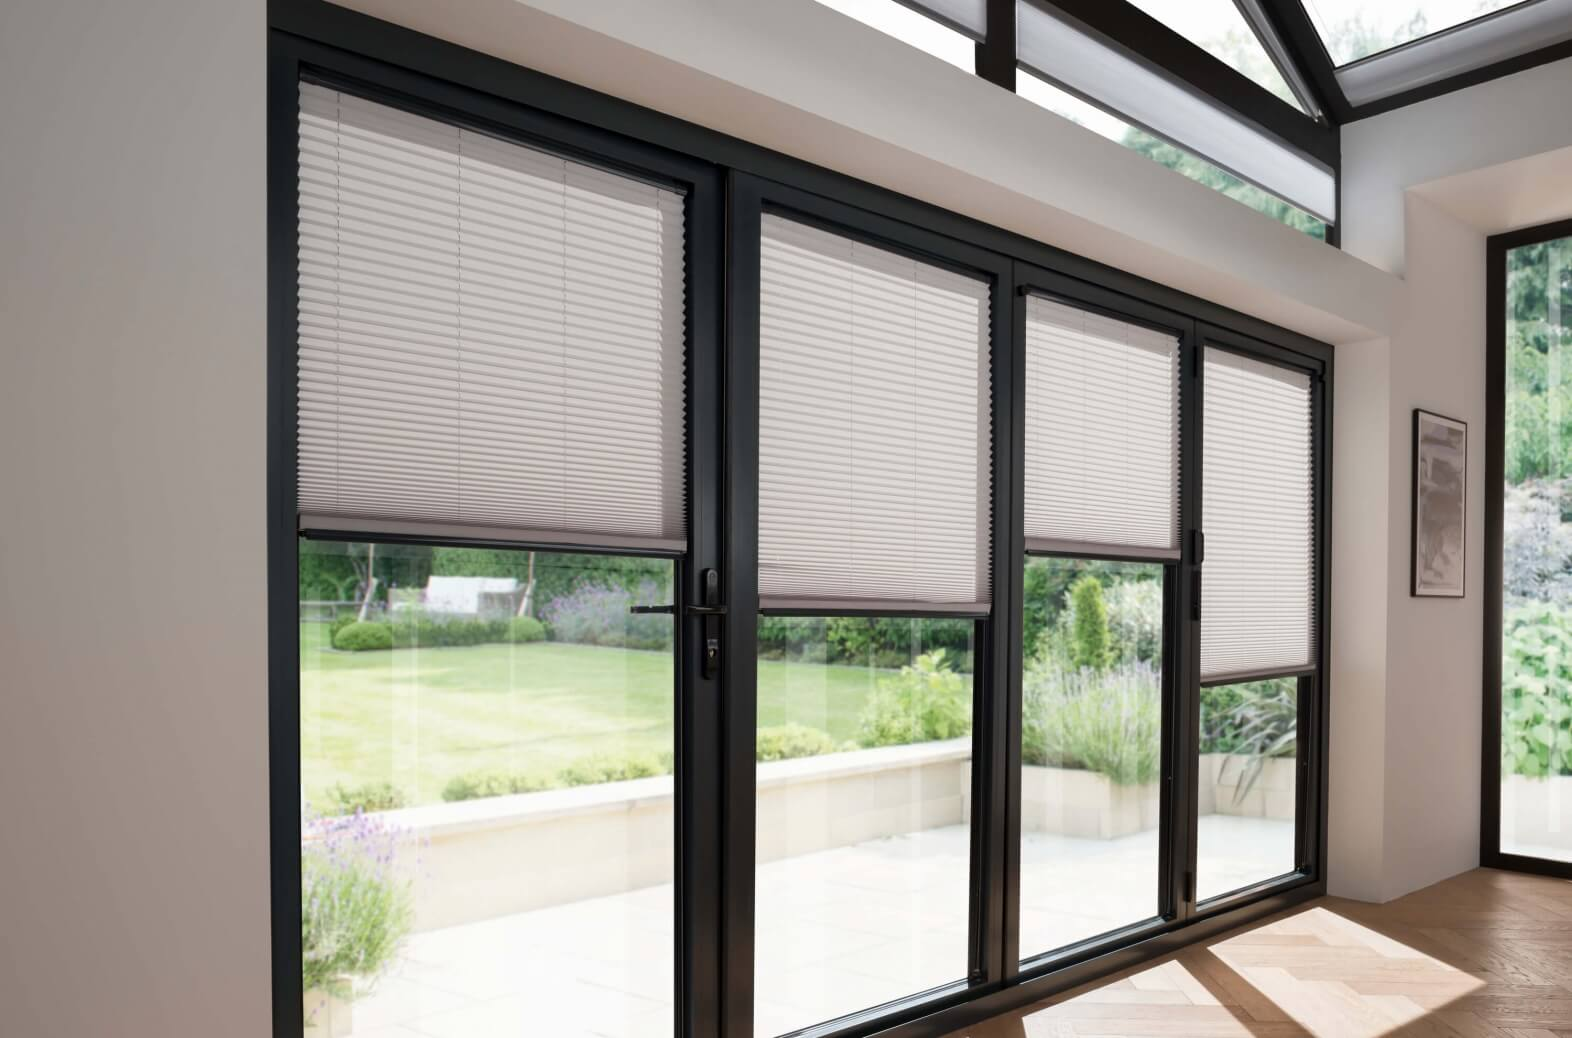 Electric Blinds Remote Controlled Window Blinds Duette